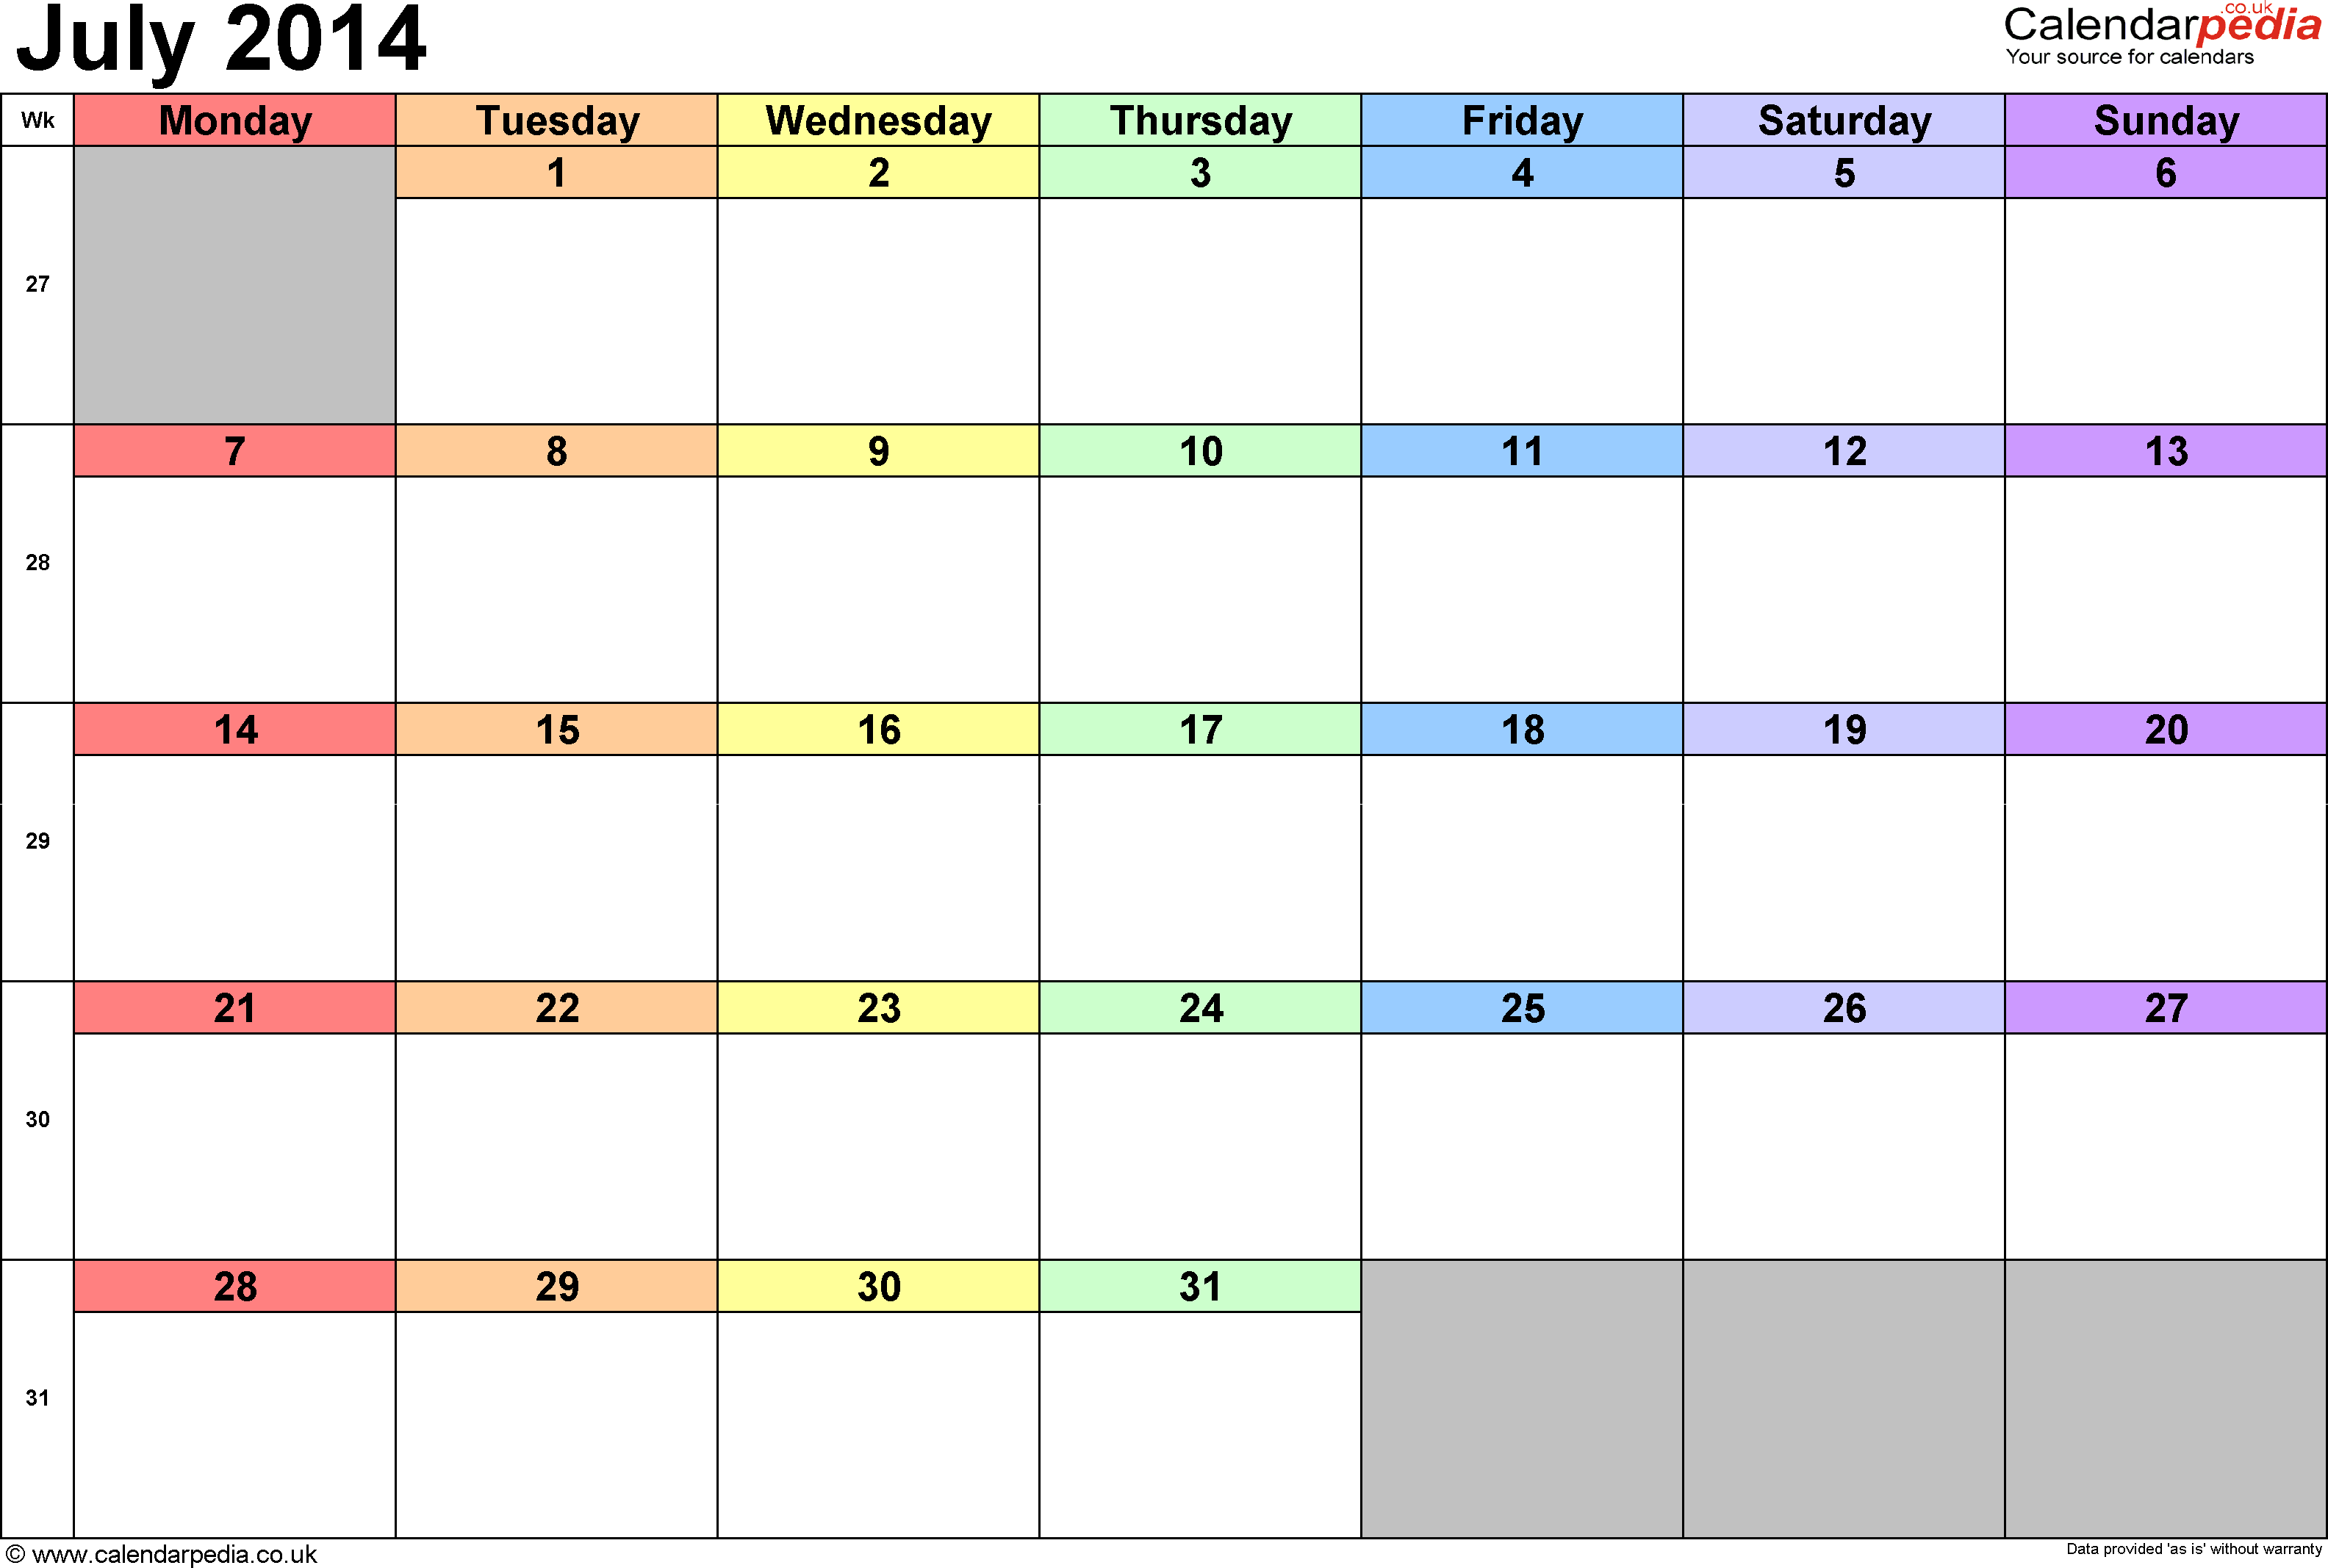 Calendar July 2014, landscape orientation, 1 page, with UK bank holidays and week numbers